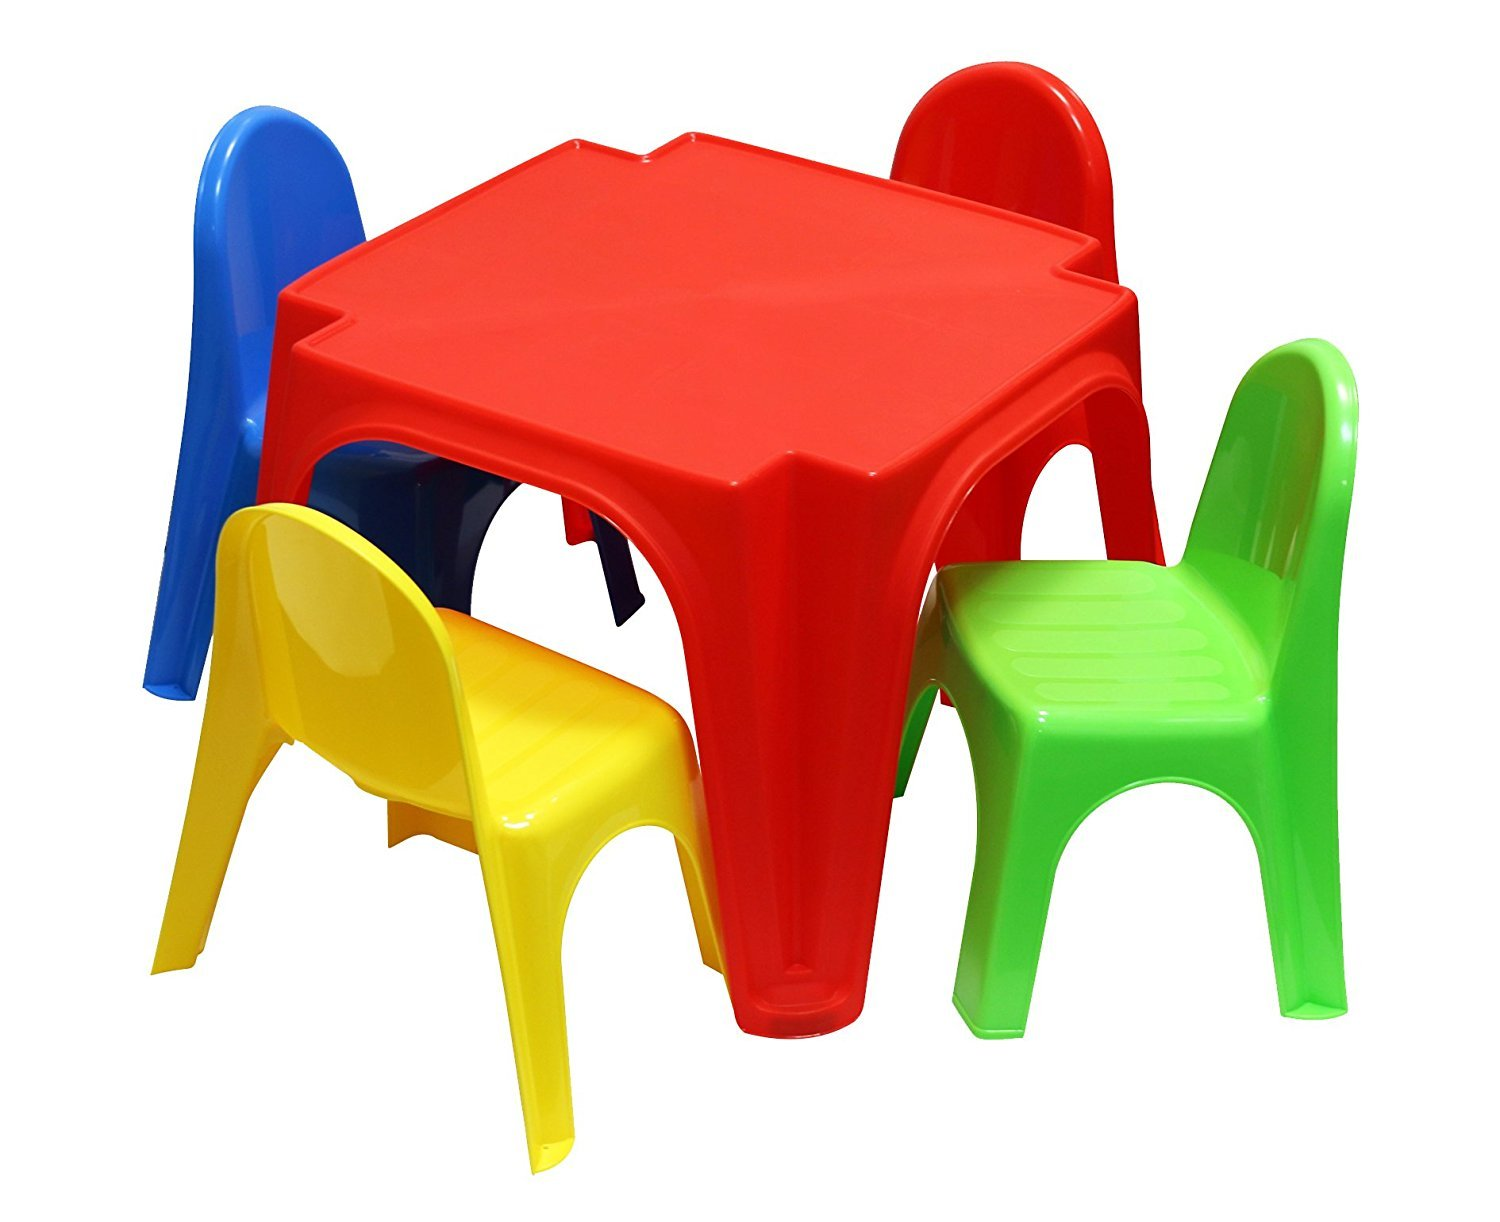 Starplast Childrens Plastic Table and 4 Chairs Set